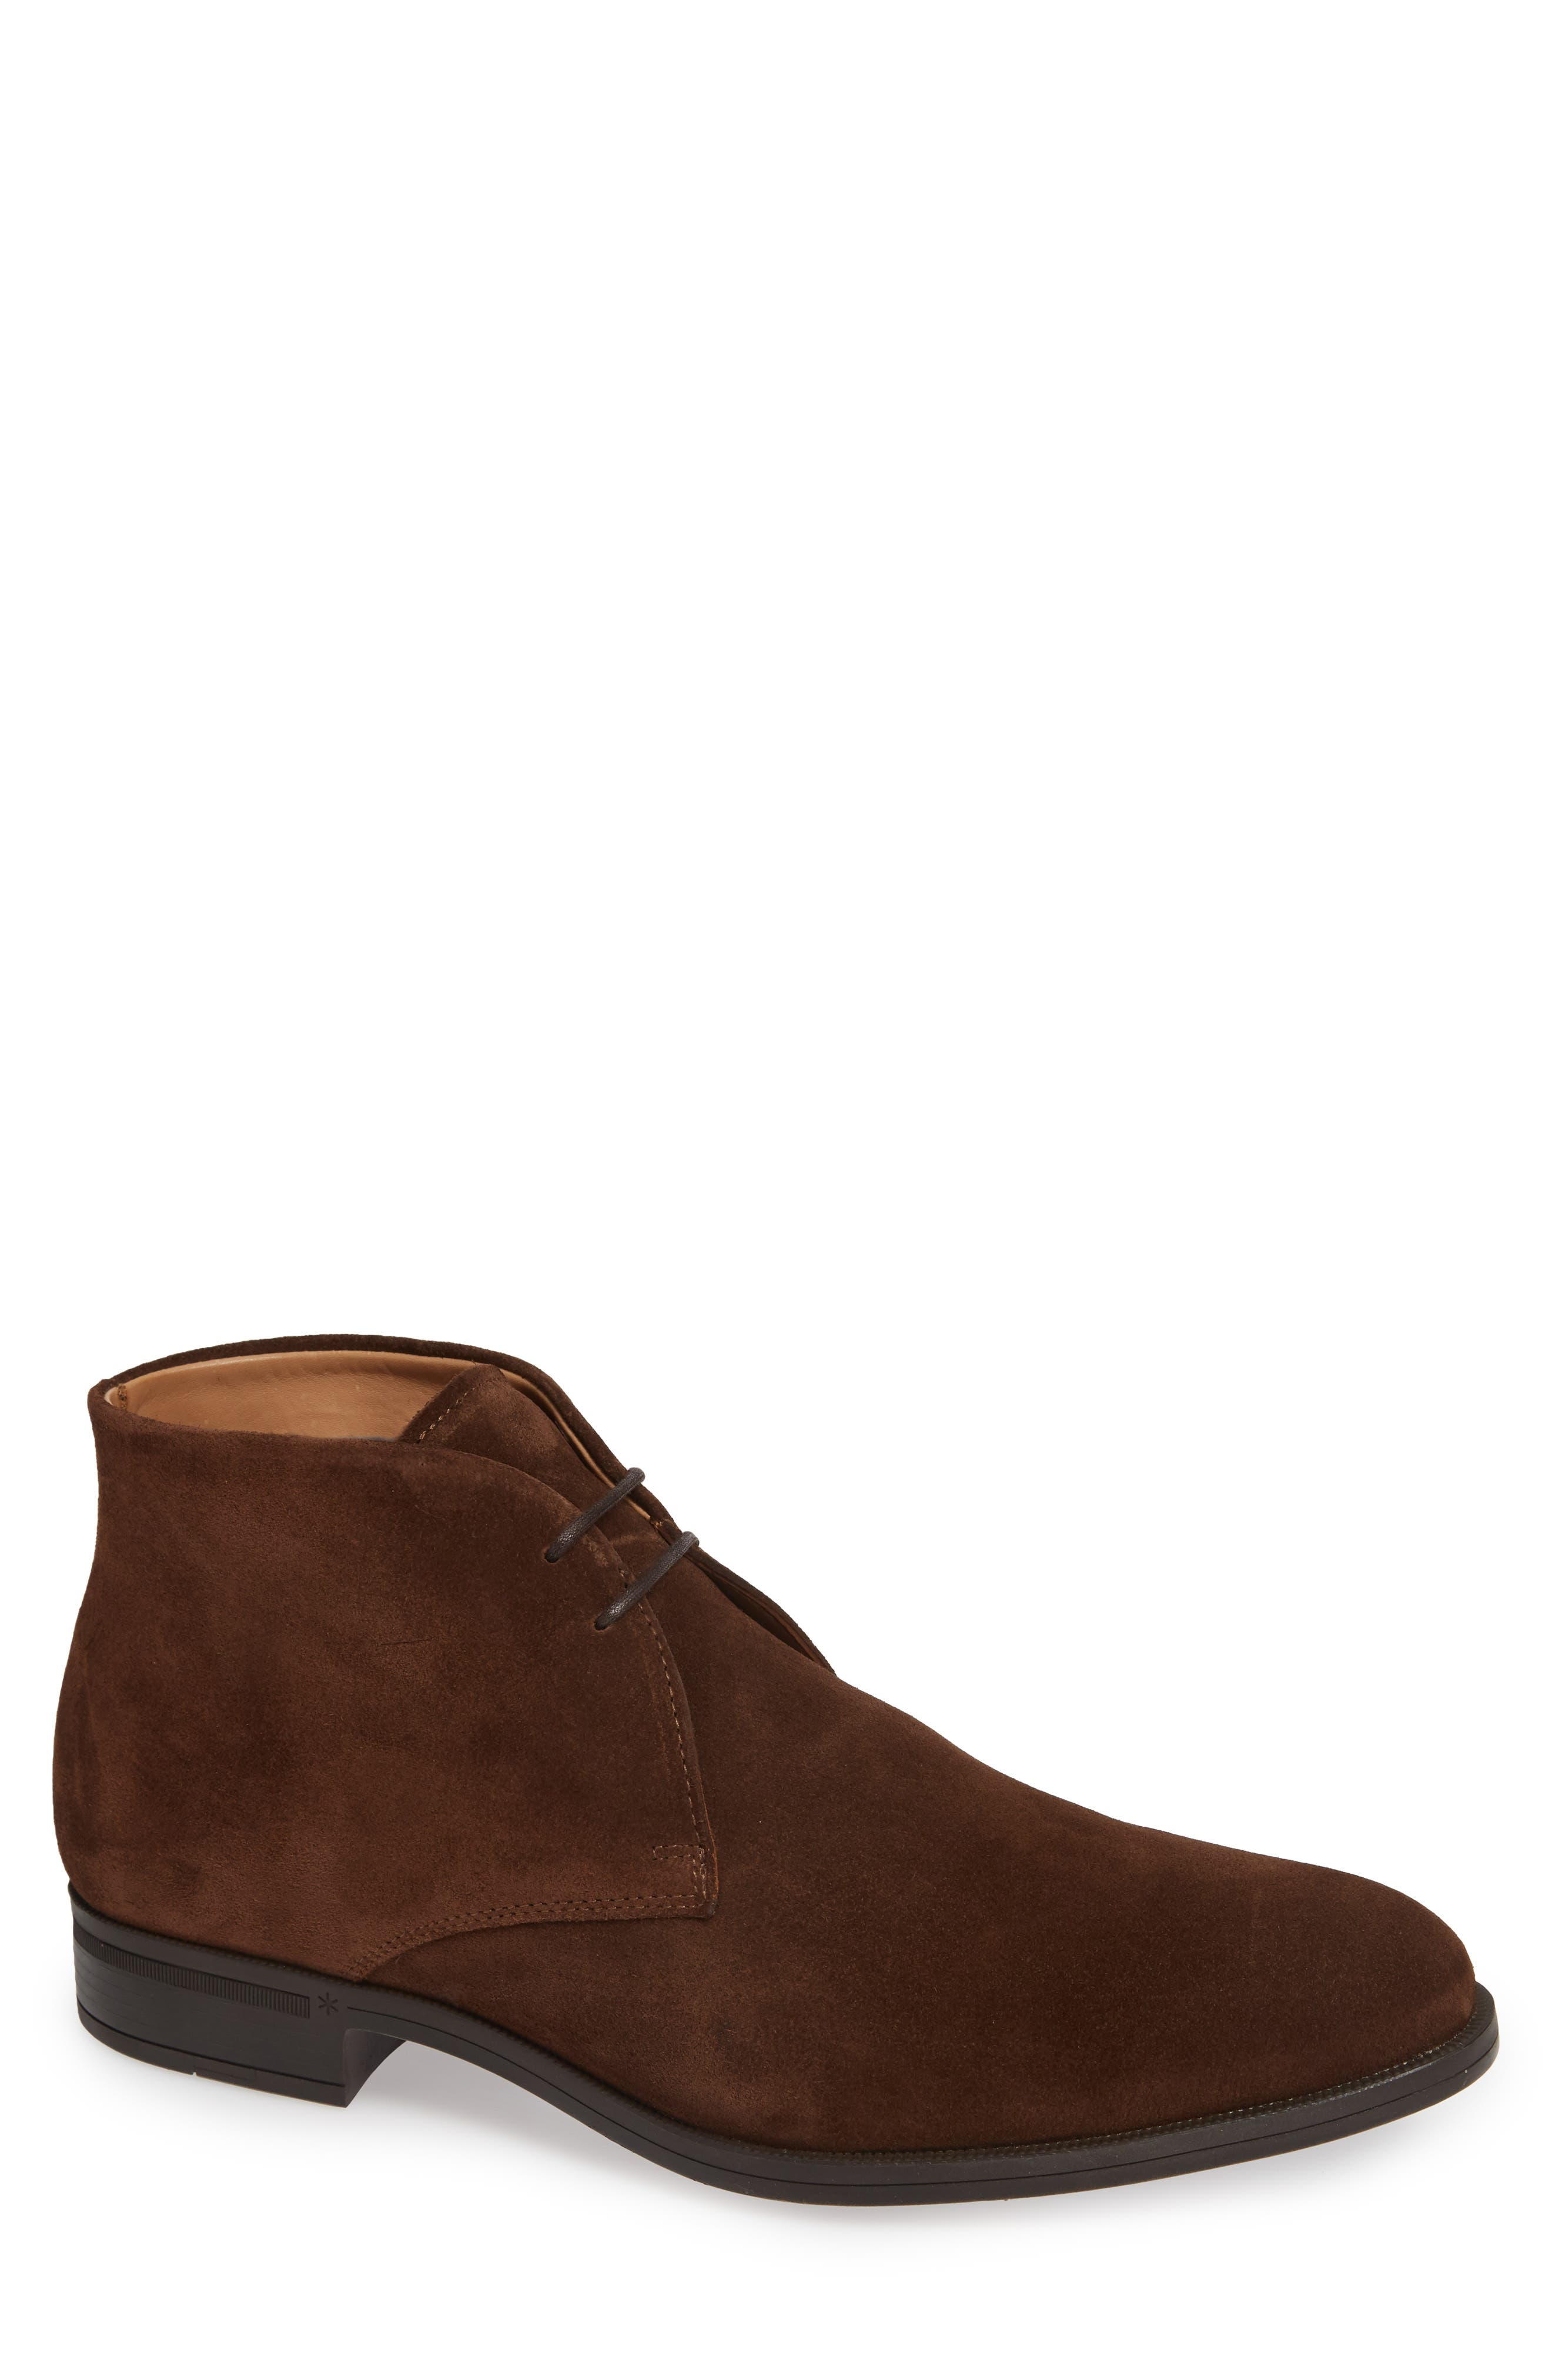 Vince Camuto Iden Chukka Boot, Brown